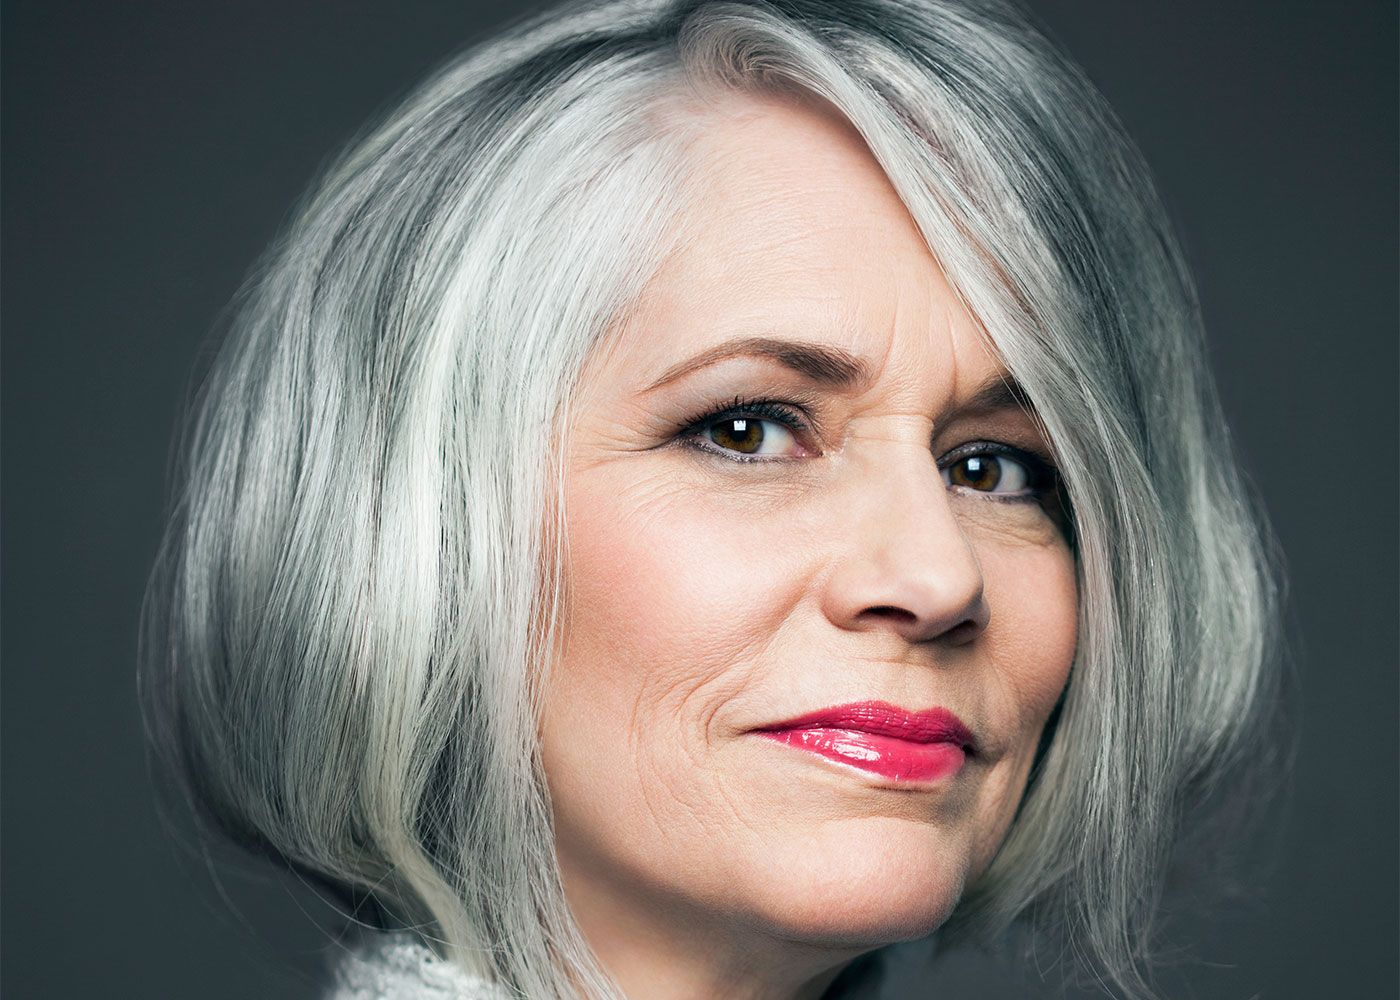 MakeUp Tips if You Have Grey Hair Grey hair over 50